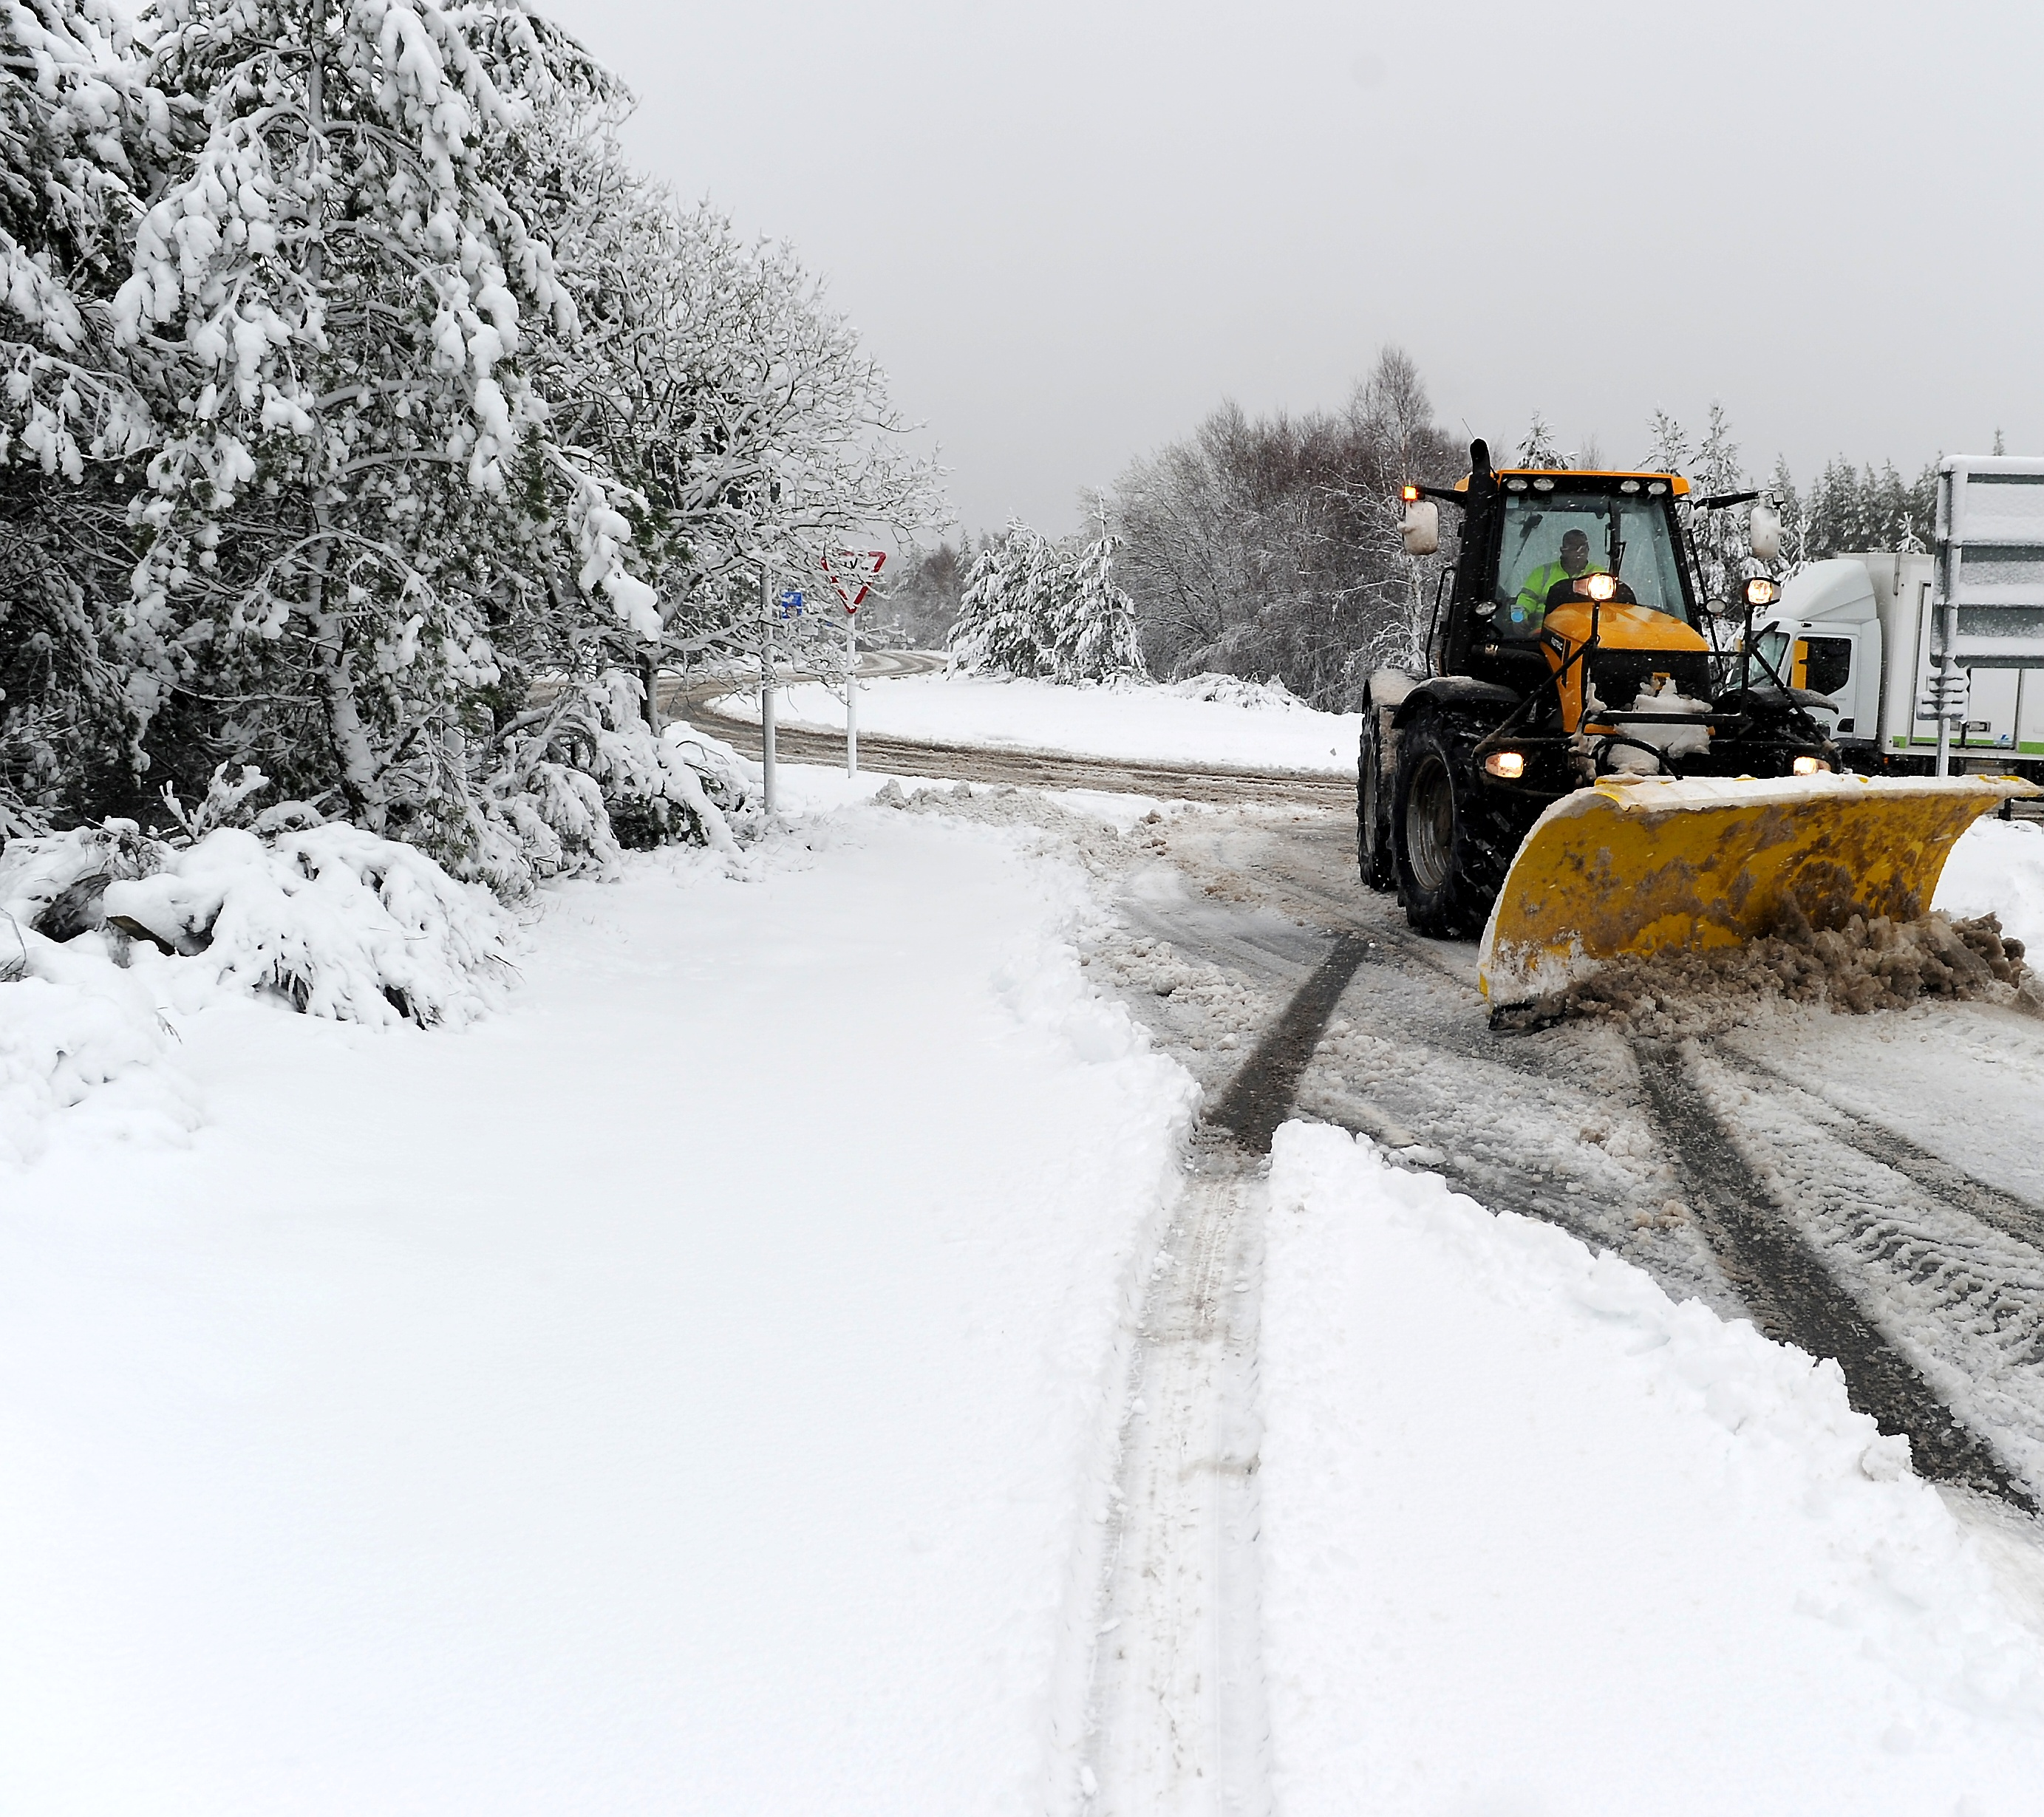 Heavy snow and traffic lights at Slochd made driving conditions difficult on the A9 between Carrbridge and Moy yesterday morning. Picture by Sandy McCook